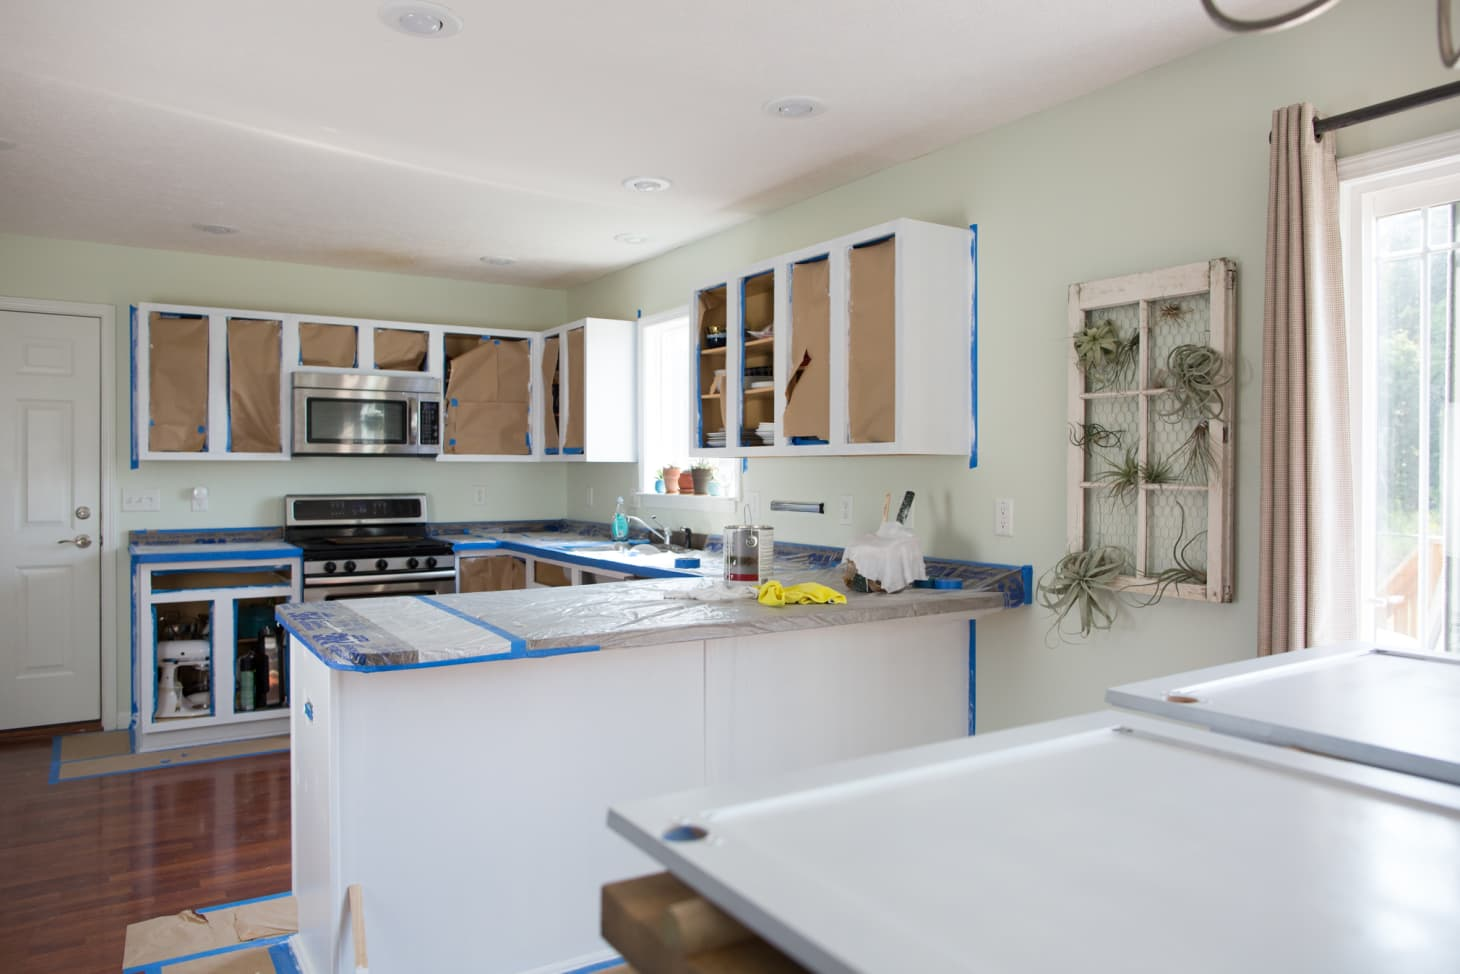 How Much Will It Cost To Paint Kitchen Cabinets